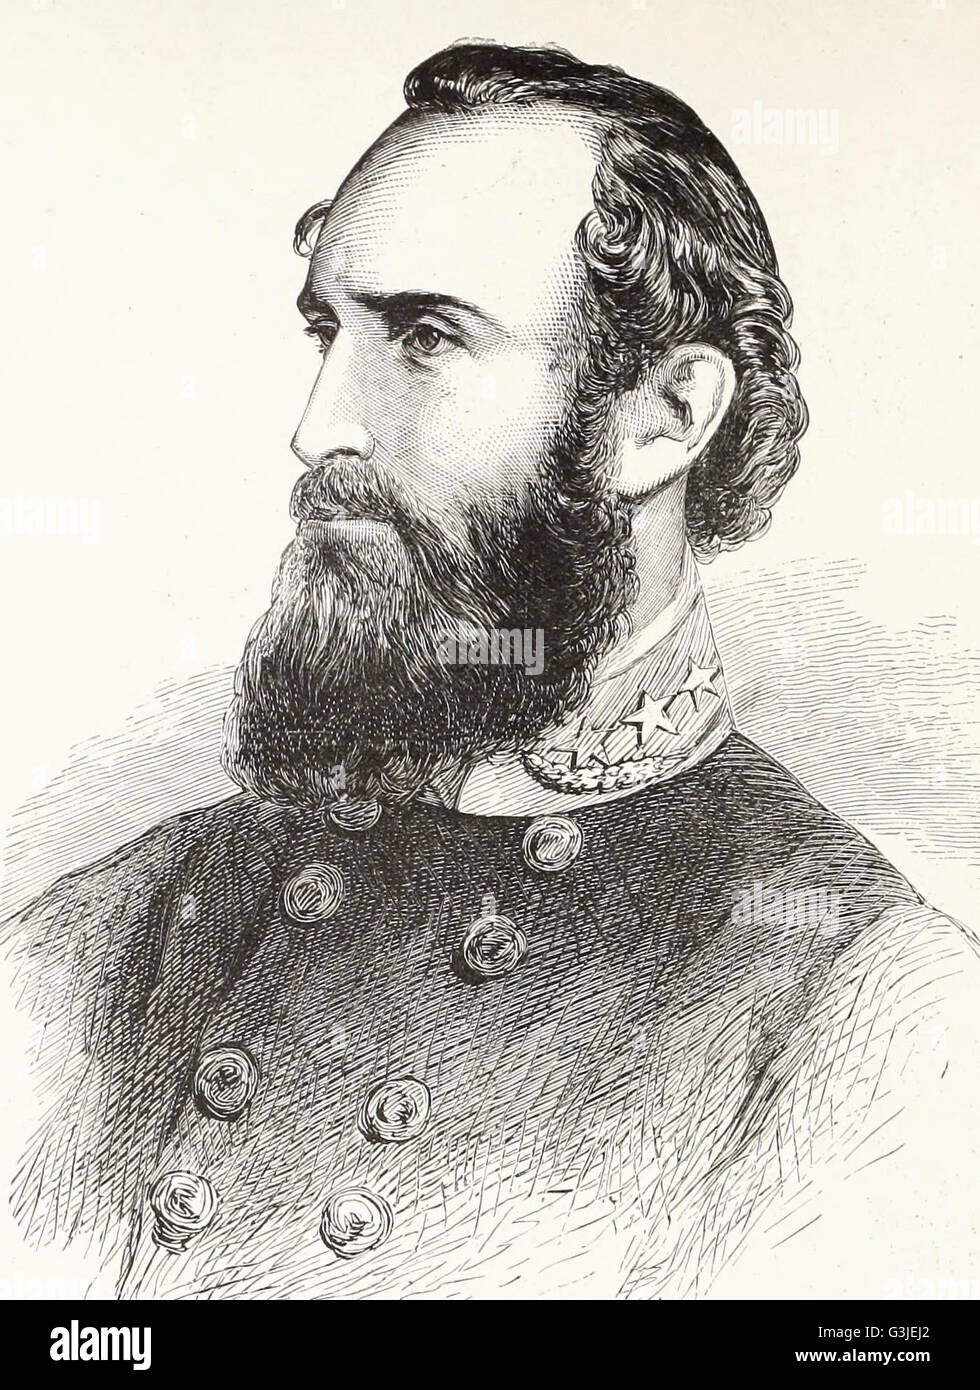 General Thomas J Stonewall Jackson - USA Civil War - Stock Image